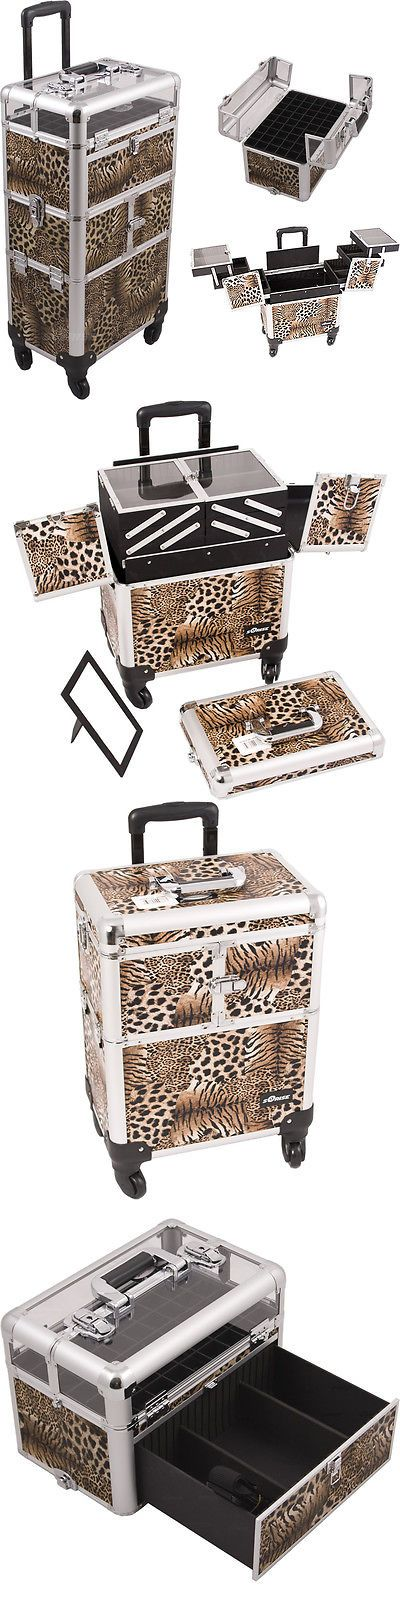 Rolling Makeup Cases: Makeup Storage Box Train Make Up Cosmetic Luggage Organizer Rolling Beauty Case -> BUY IT NOW ONLY: $219.99 on eBay!